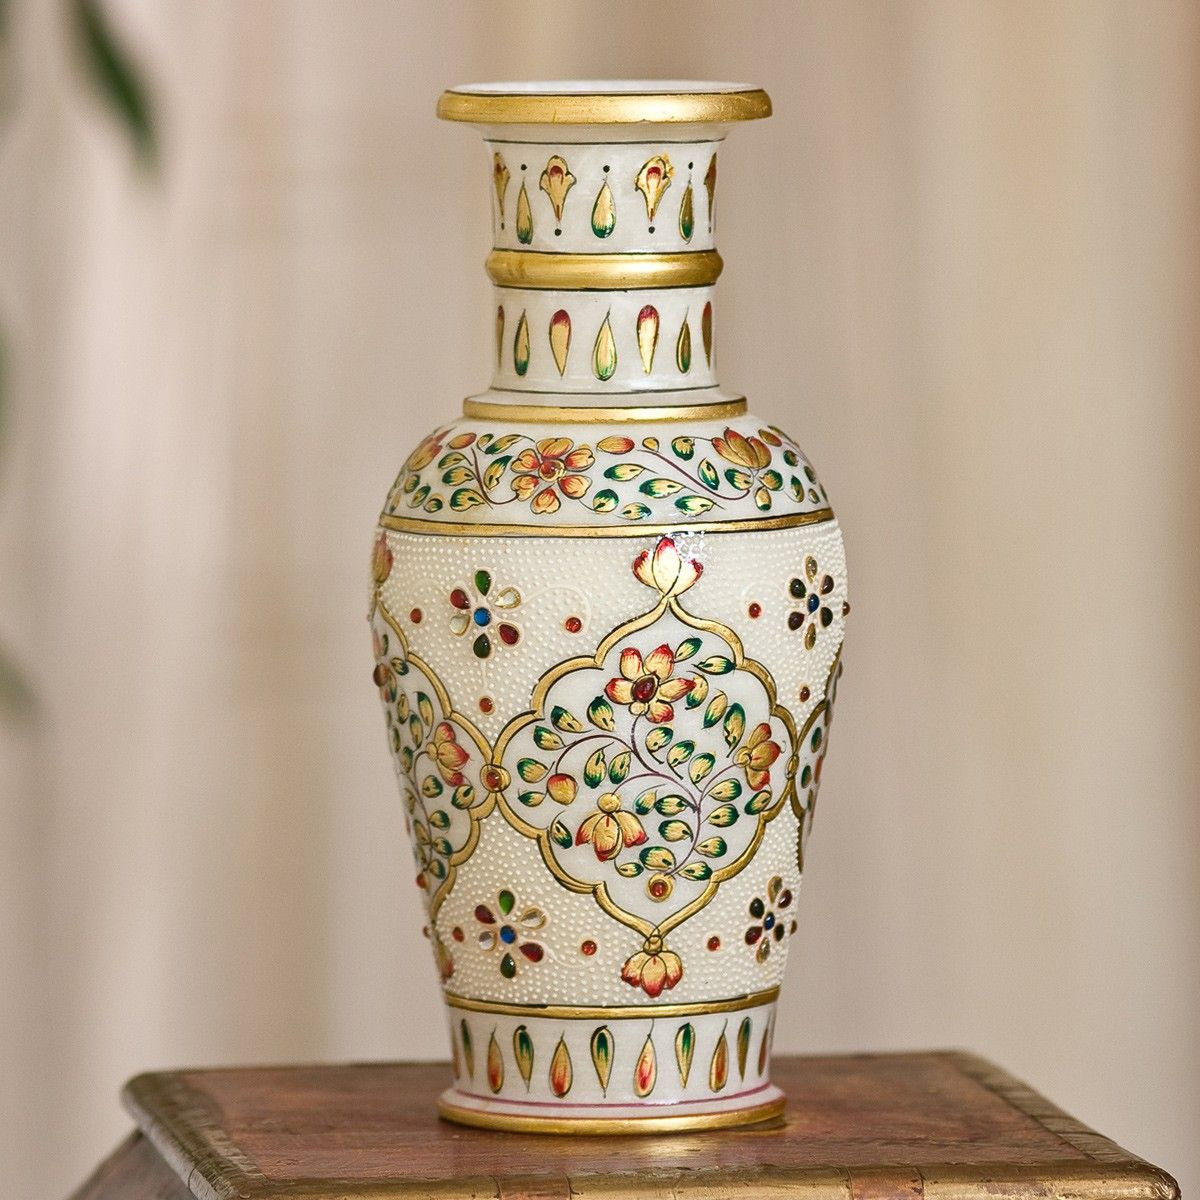 onyx vases for sale of marble vases for sale pictures chitrahandicraft multicolour marble throughout marble vases for sale stock indian decorations from india of marble vases for sale pictures chitrahandicraft